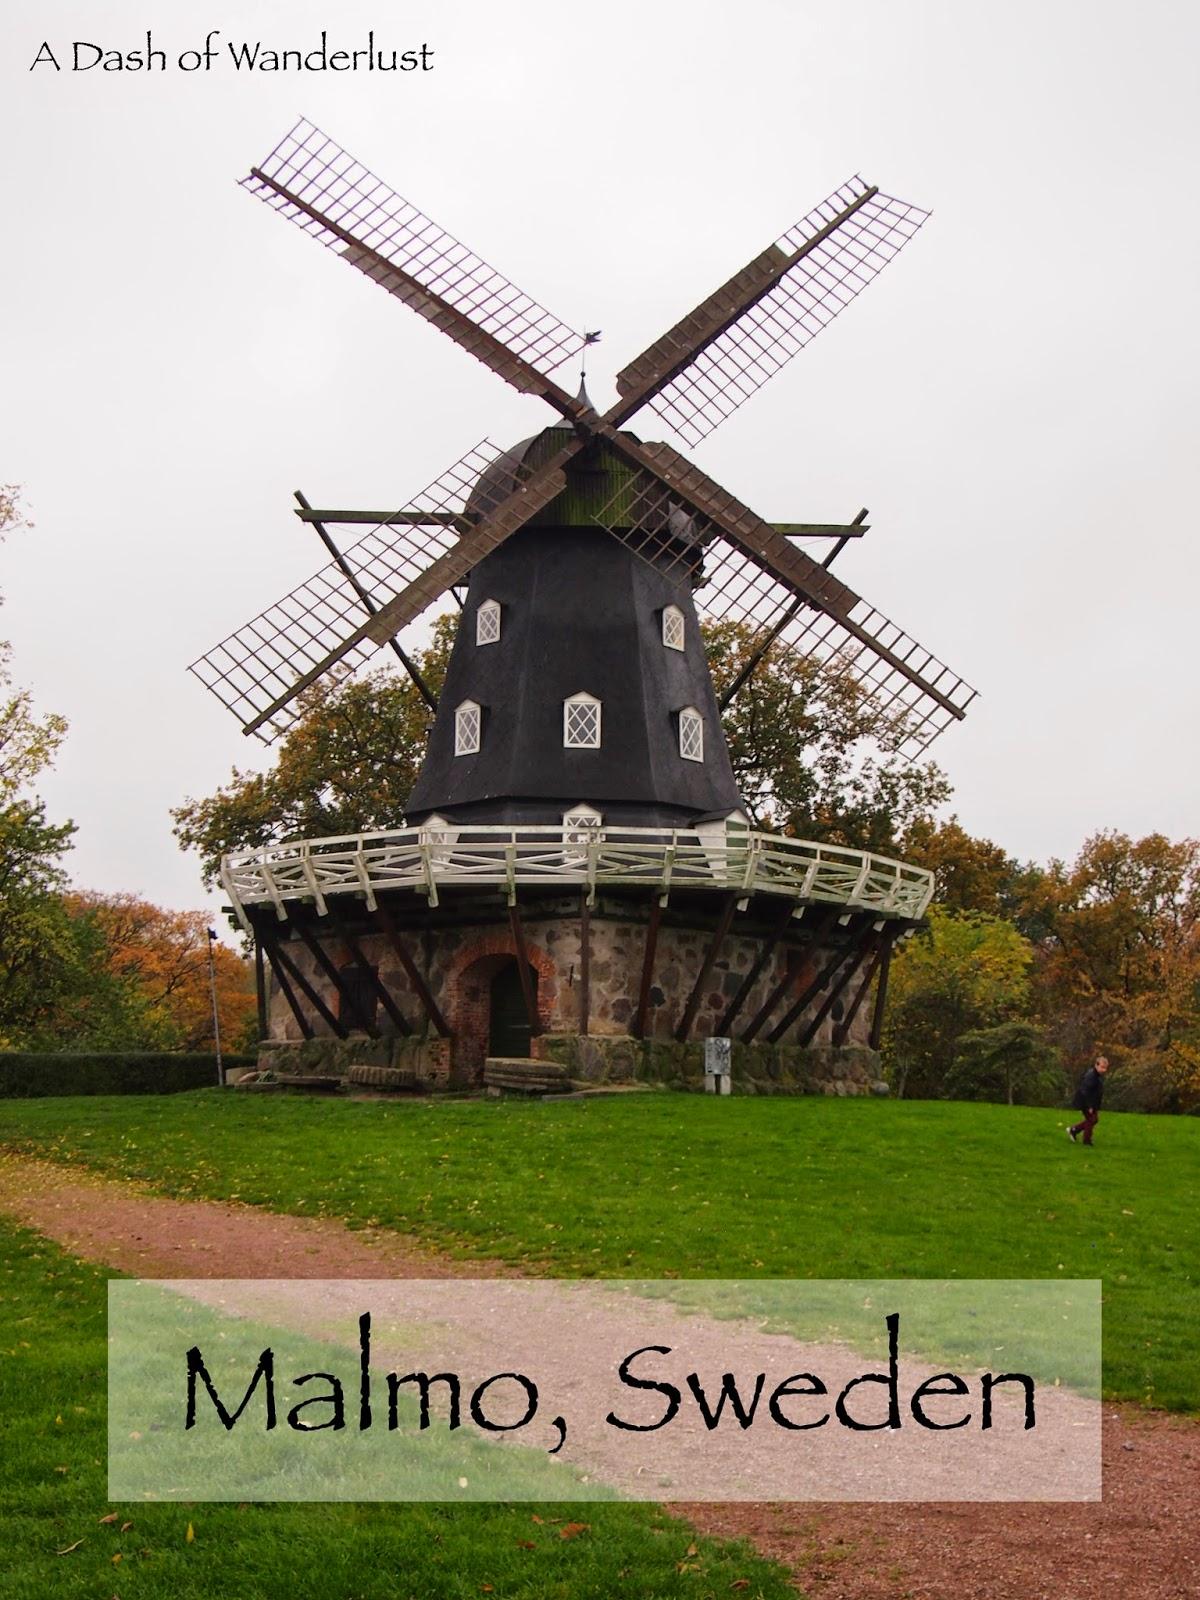 an old style windmill at the Malmo house castle